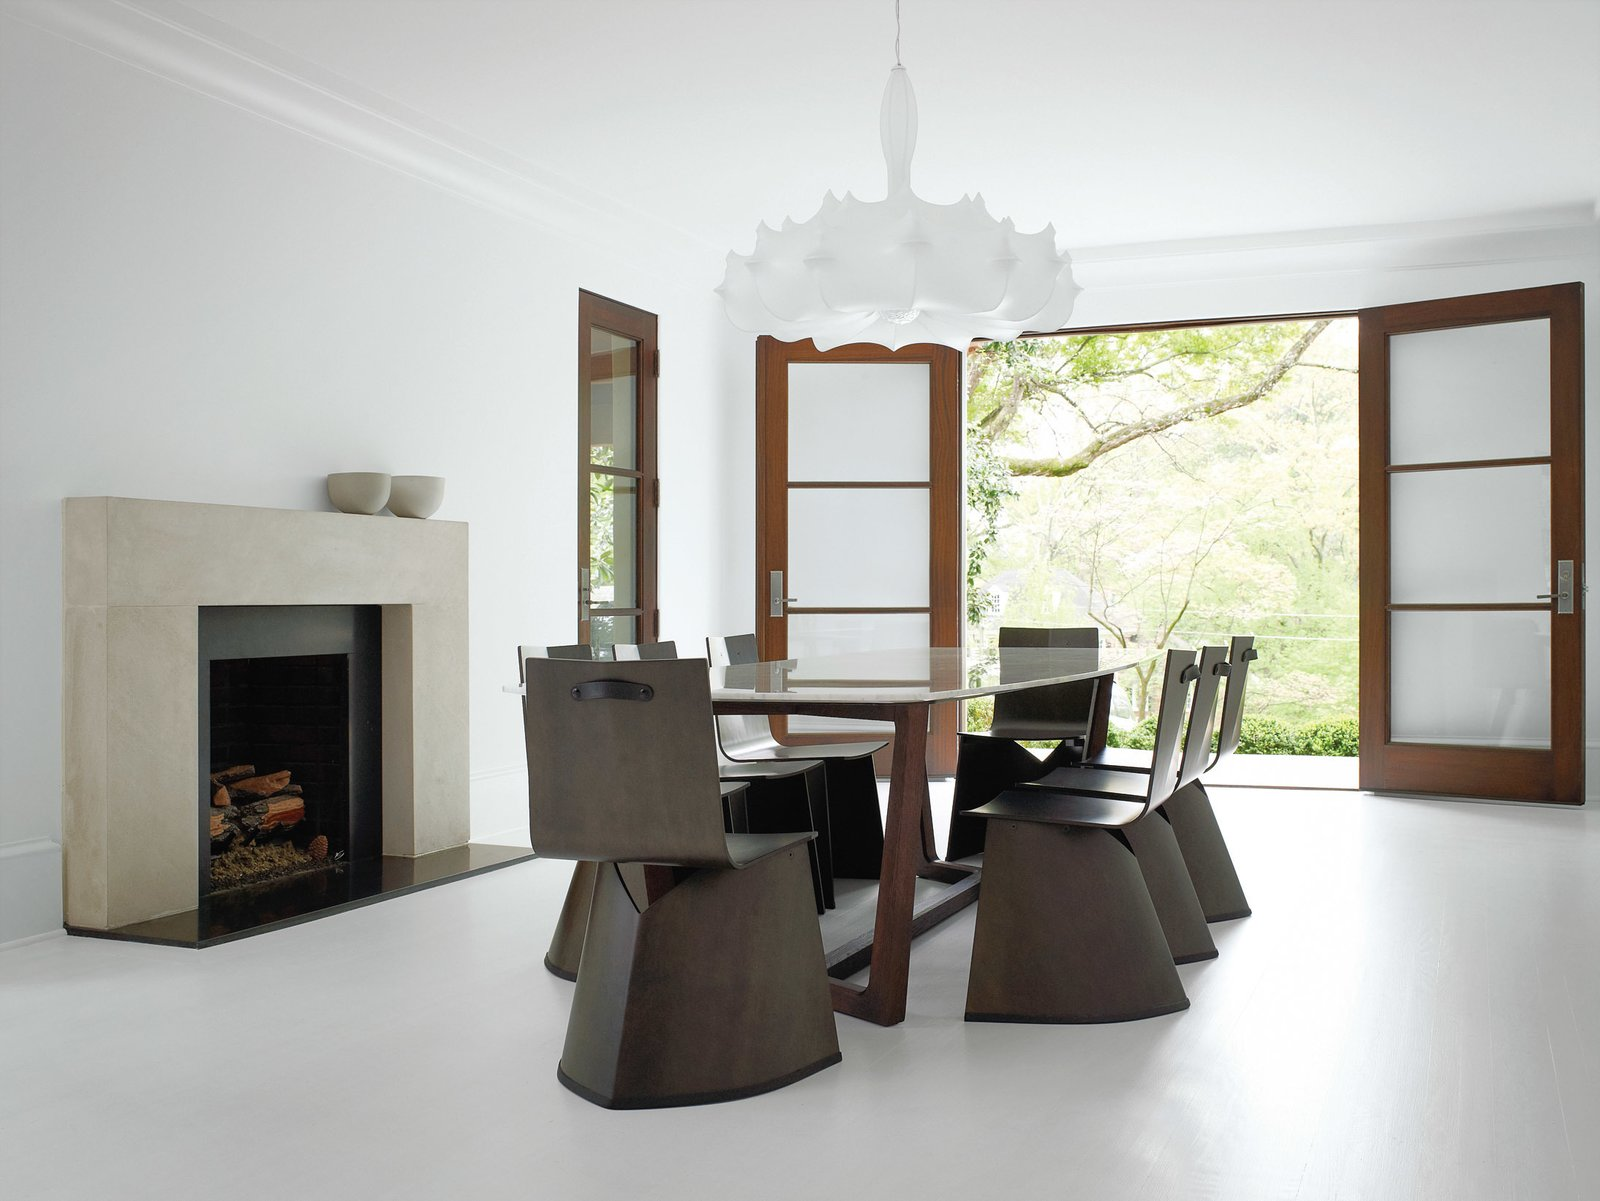 "Dining Room, Chair, Table, and Standard Layout Fireplace Konstantin Grcic's Venus chairs for ClassiCon surround a table by Poliform in the formal dining room. Hill selected the Flos chandelier designed by Marcel Wanders for its ""Old World reverence."" The sleek fireplace mantel was designed by Hill and cobbled together onsite from three solid slabs of limestone.  Photo 3 of 6 in Barbara Hill on Designing Creative and Comfortable Rooms"